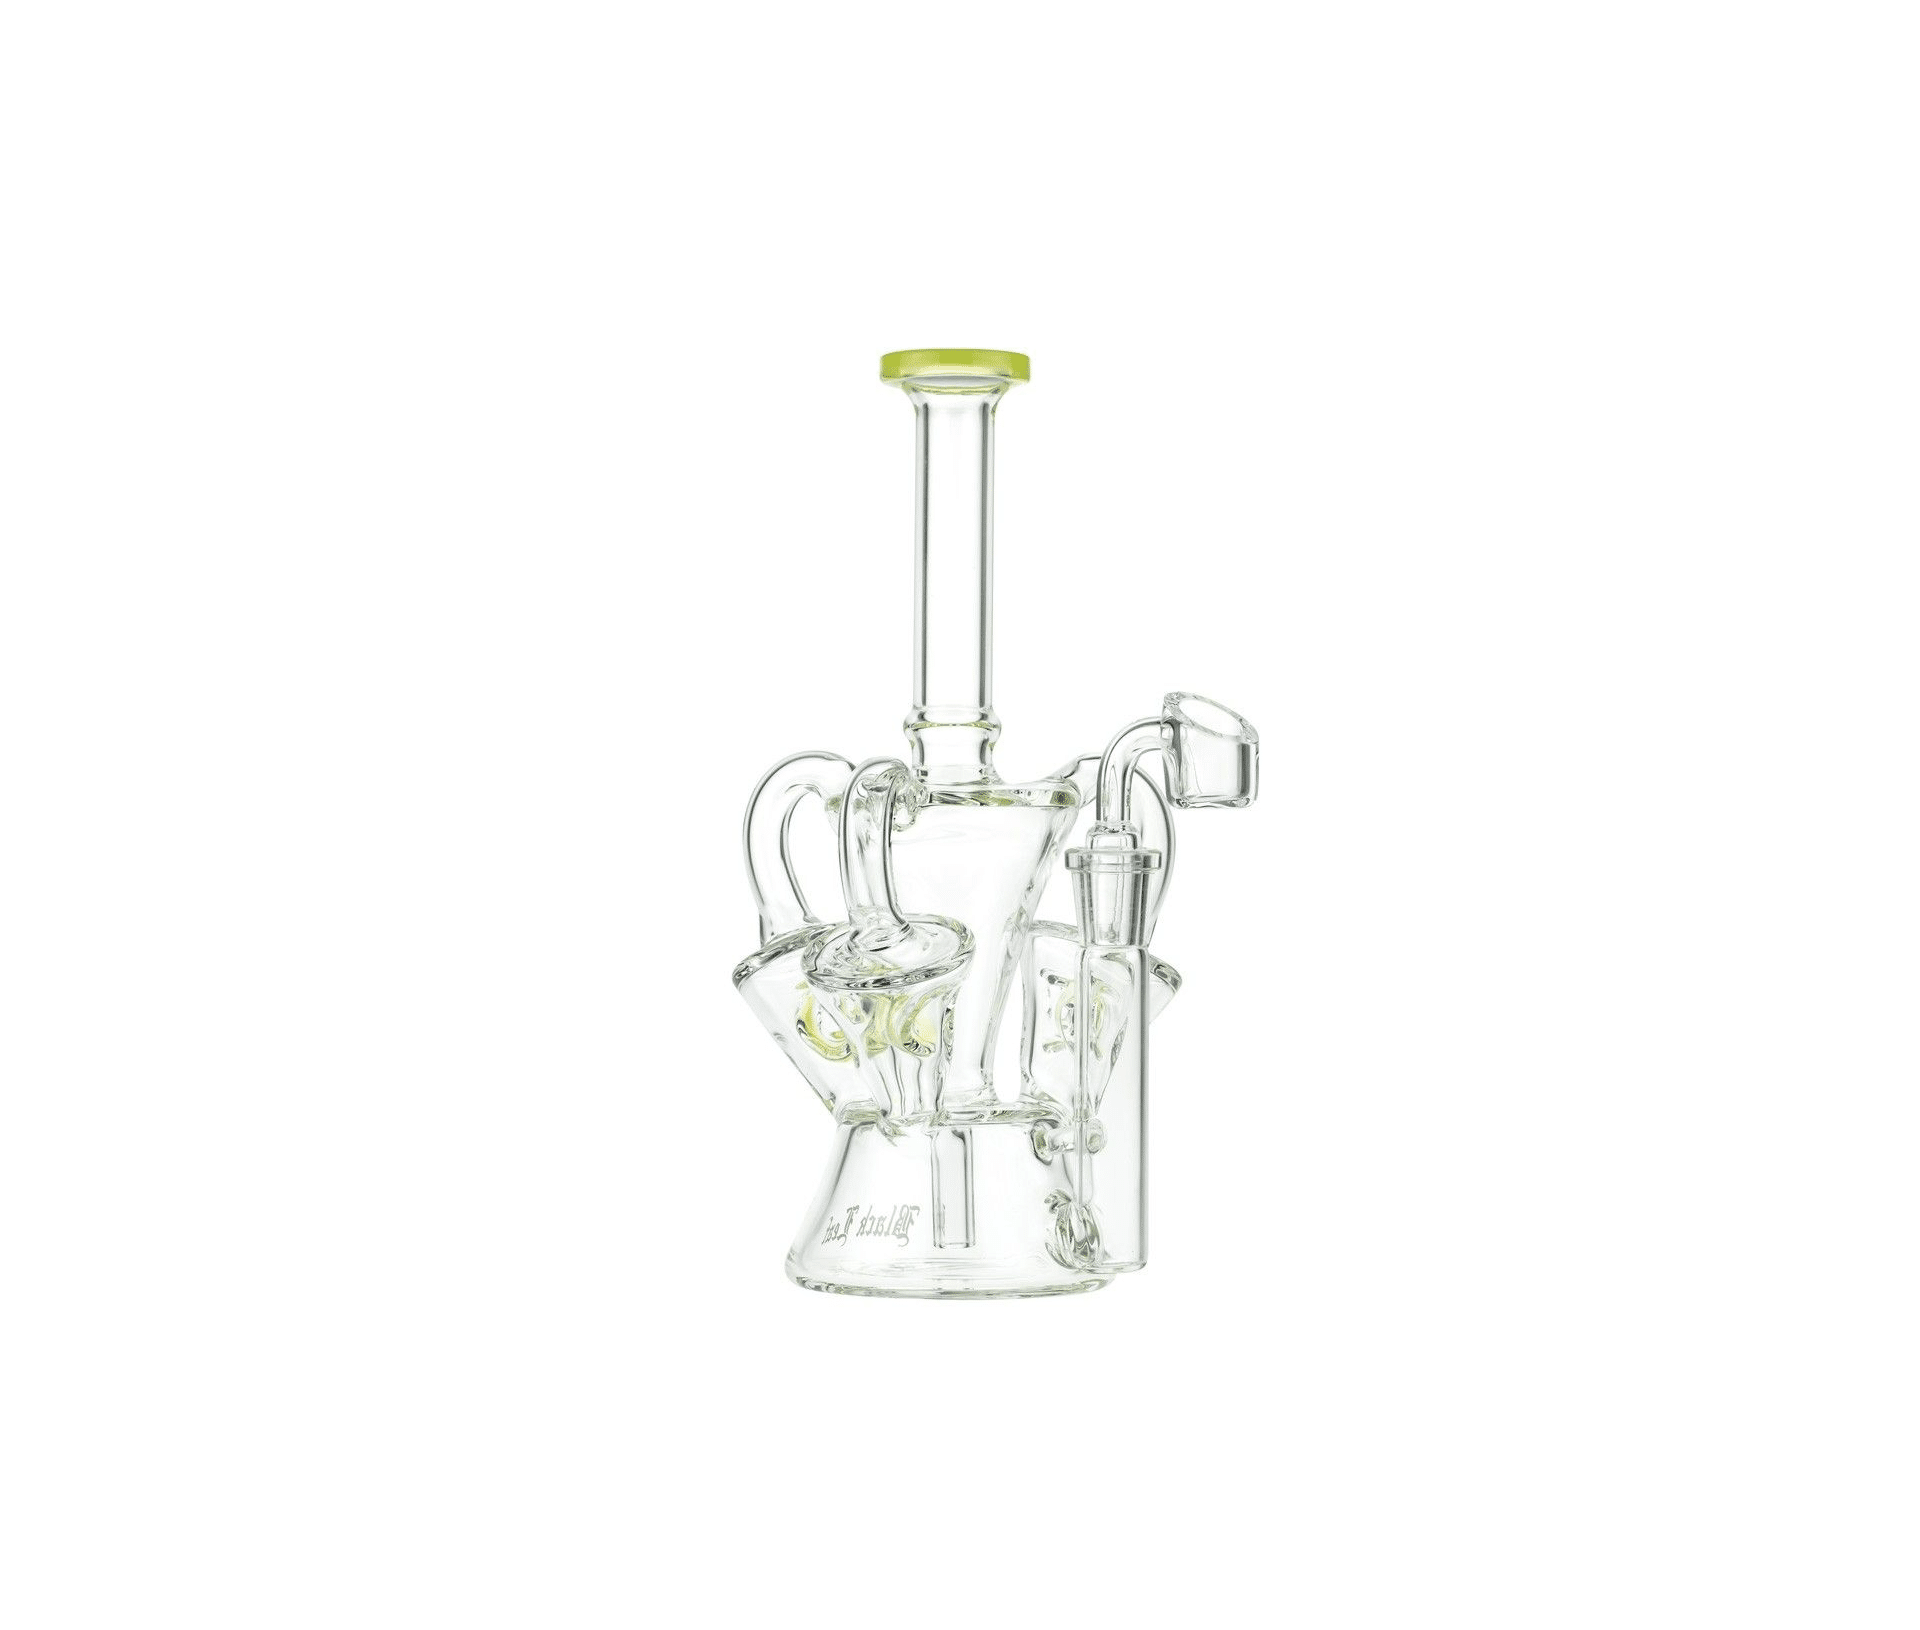 Black Leaf Glass Recycler Dab Rig with Three Recycler Chambers